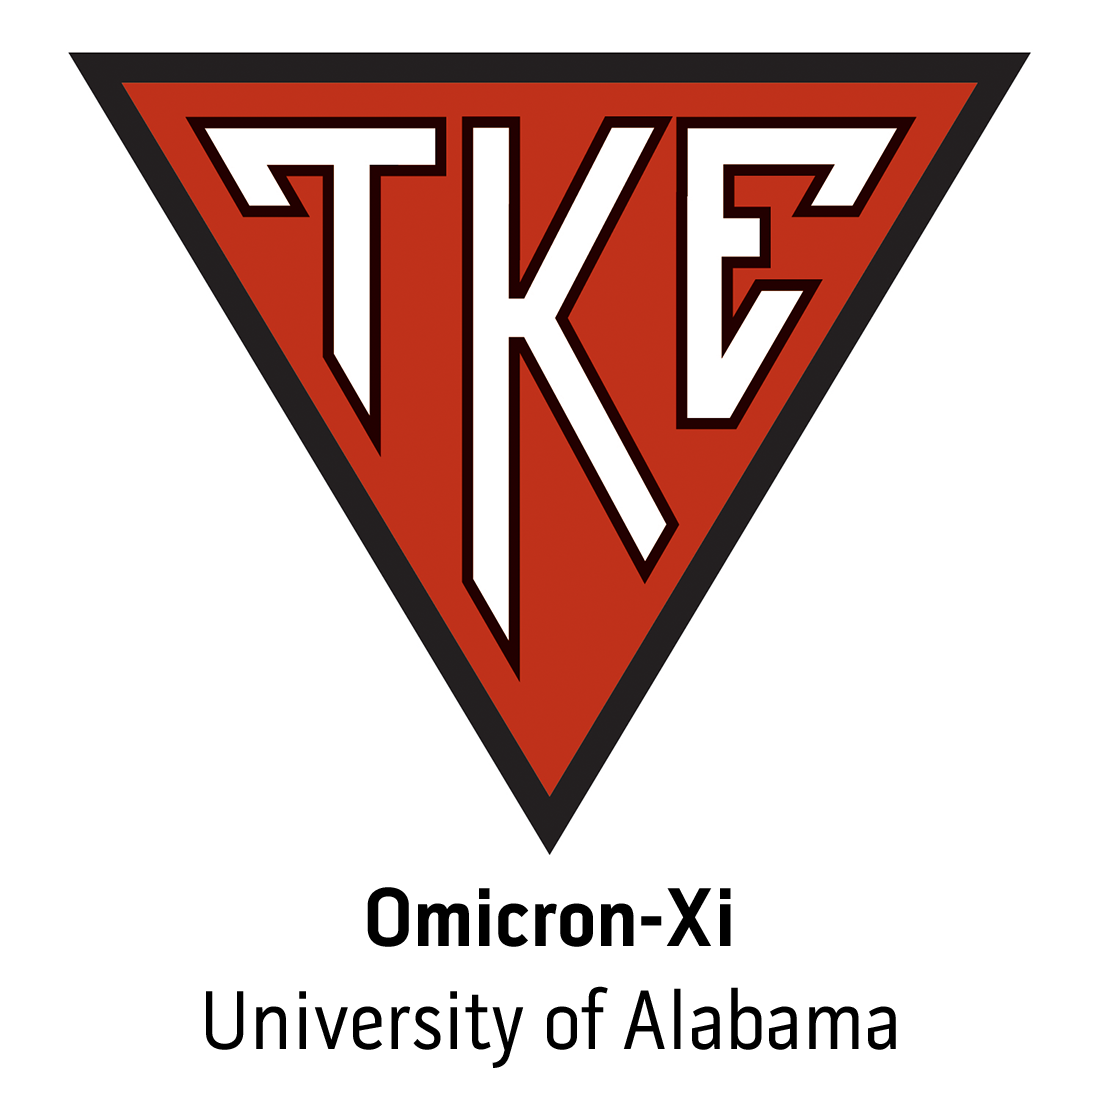 Omicron-Xi Colony at University of Alabama